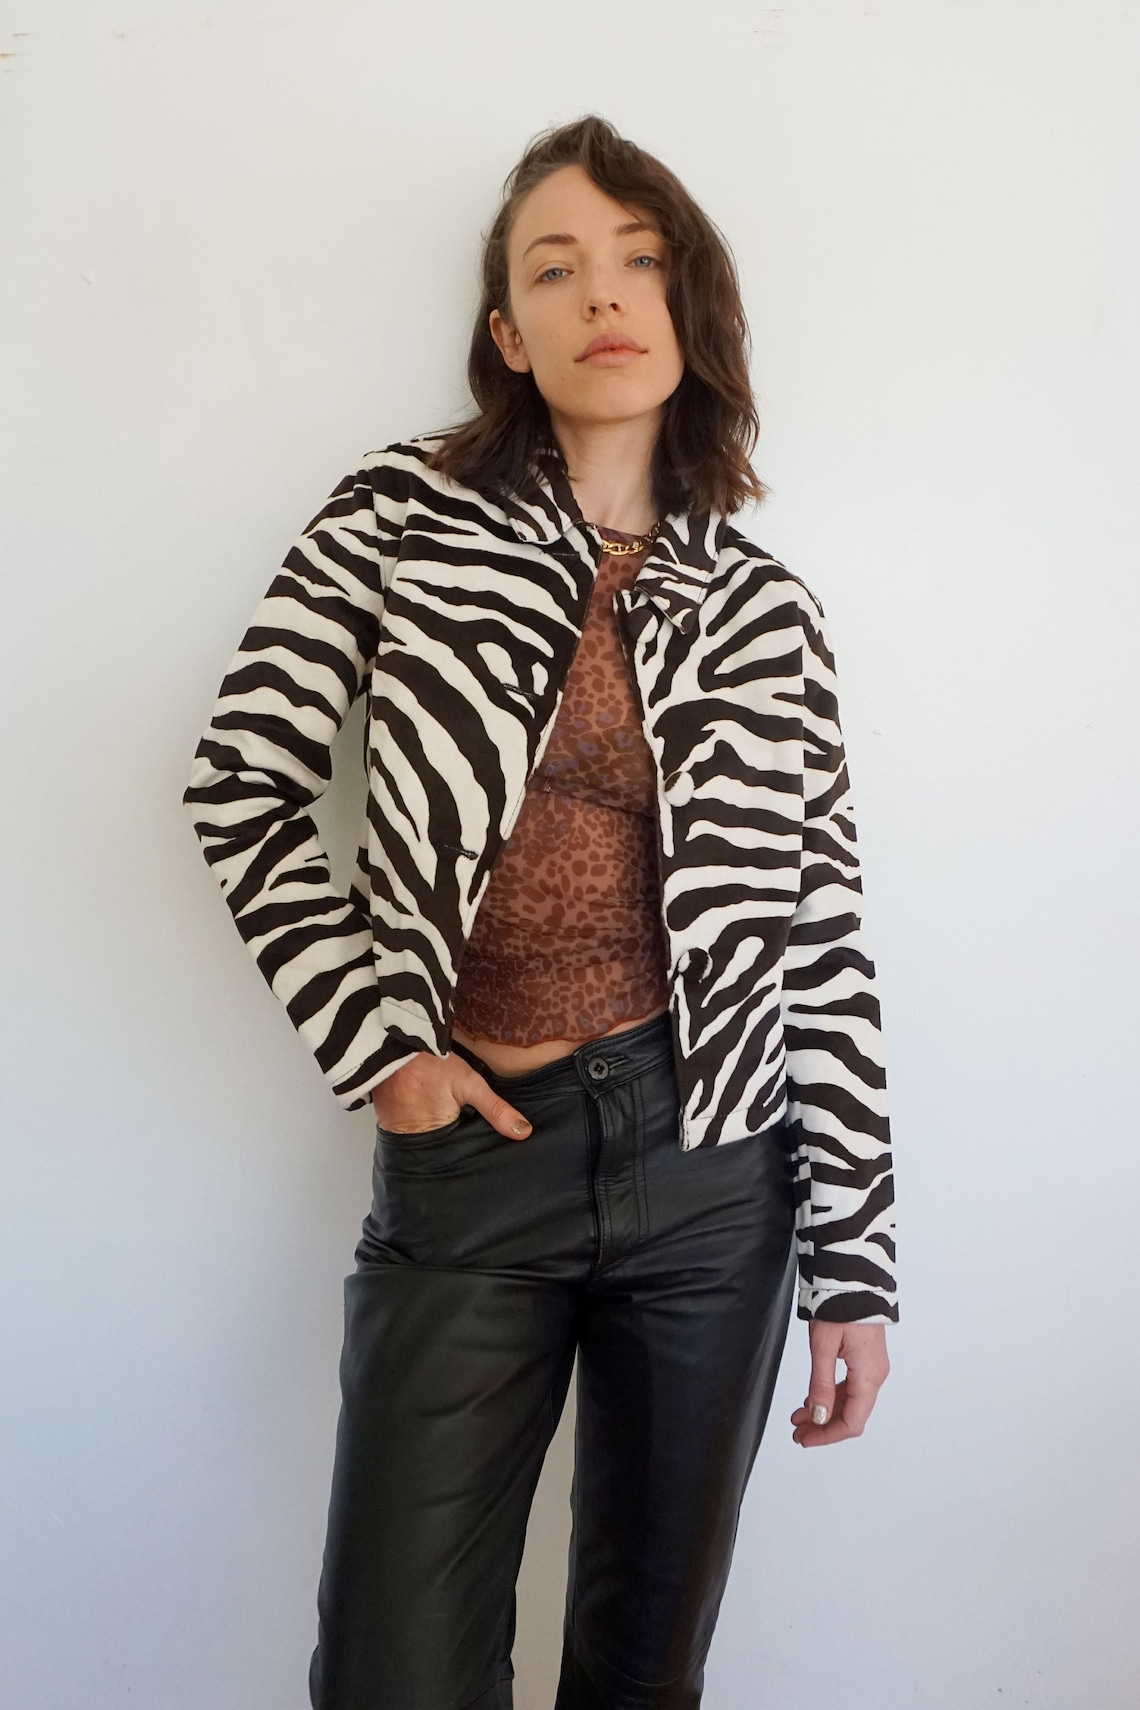 Zebra Print Fitted Fuzzy Leather Jacket Animal Faux Fur Vintage Wild Minimal Button Up